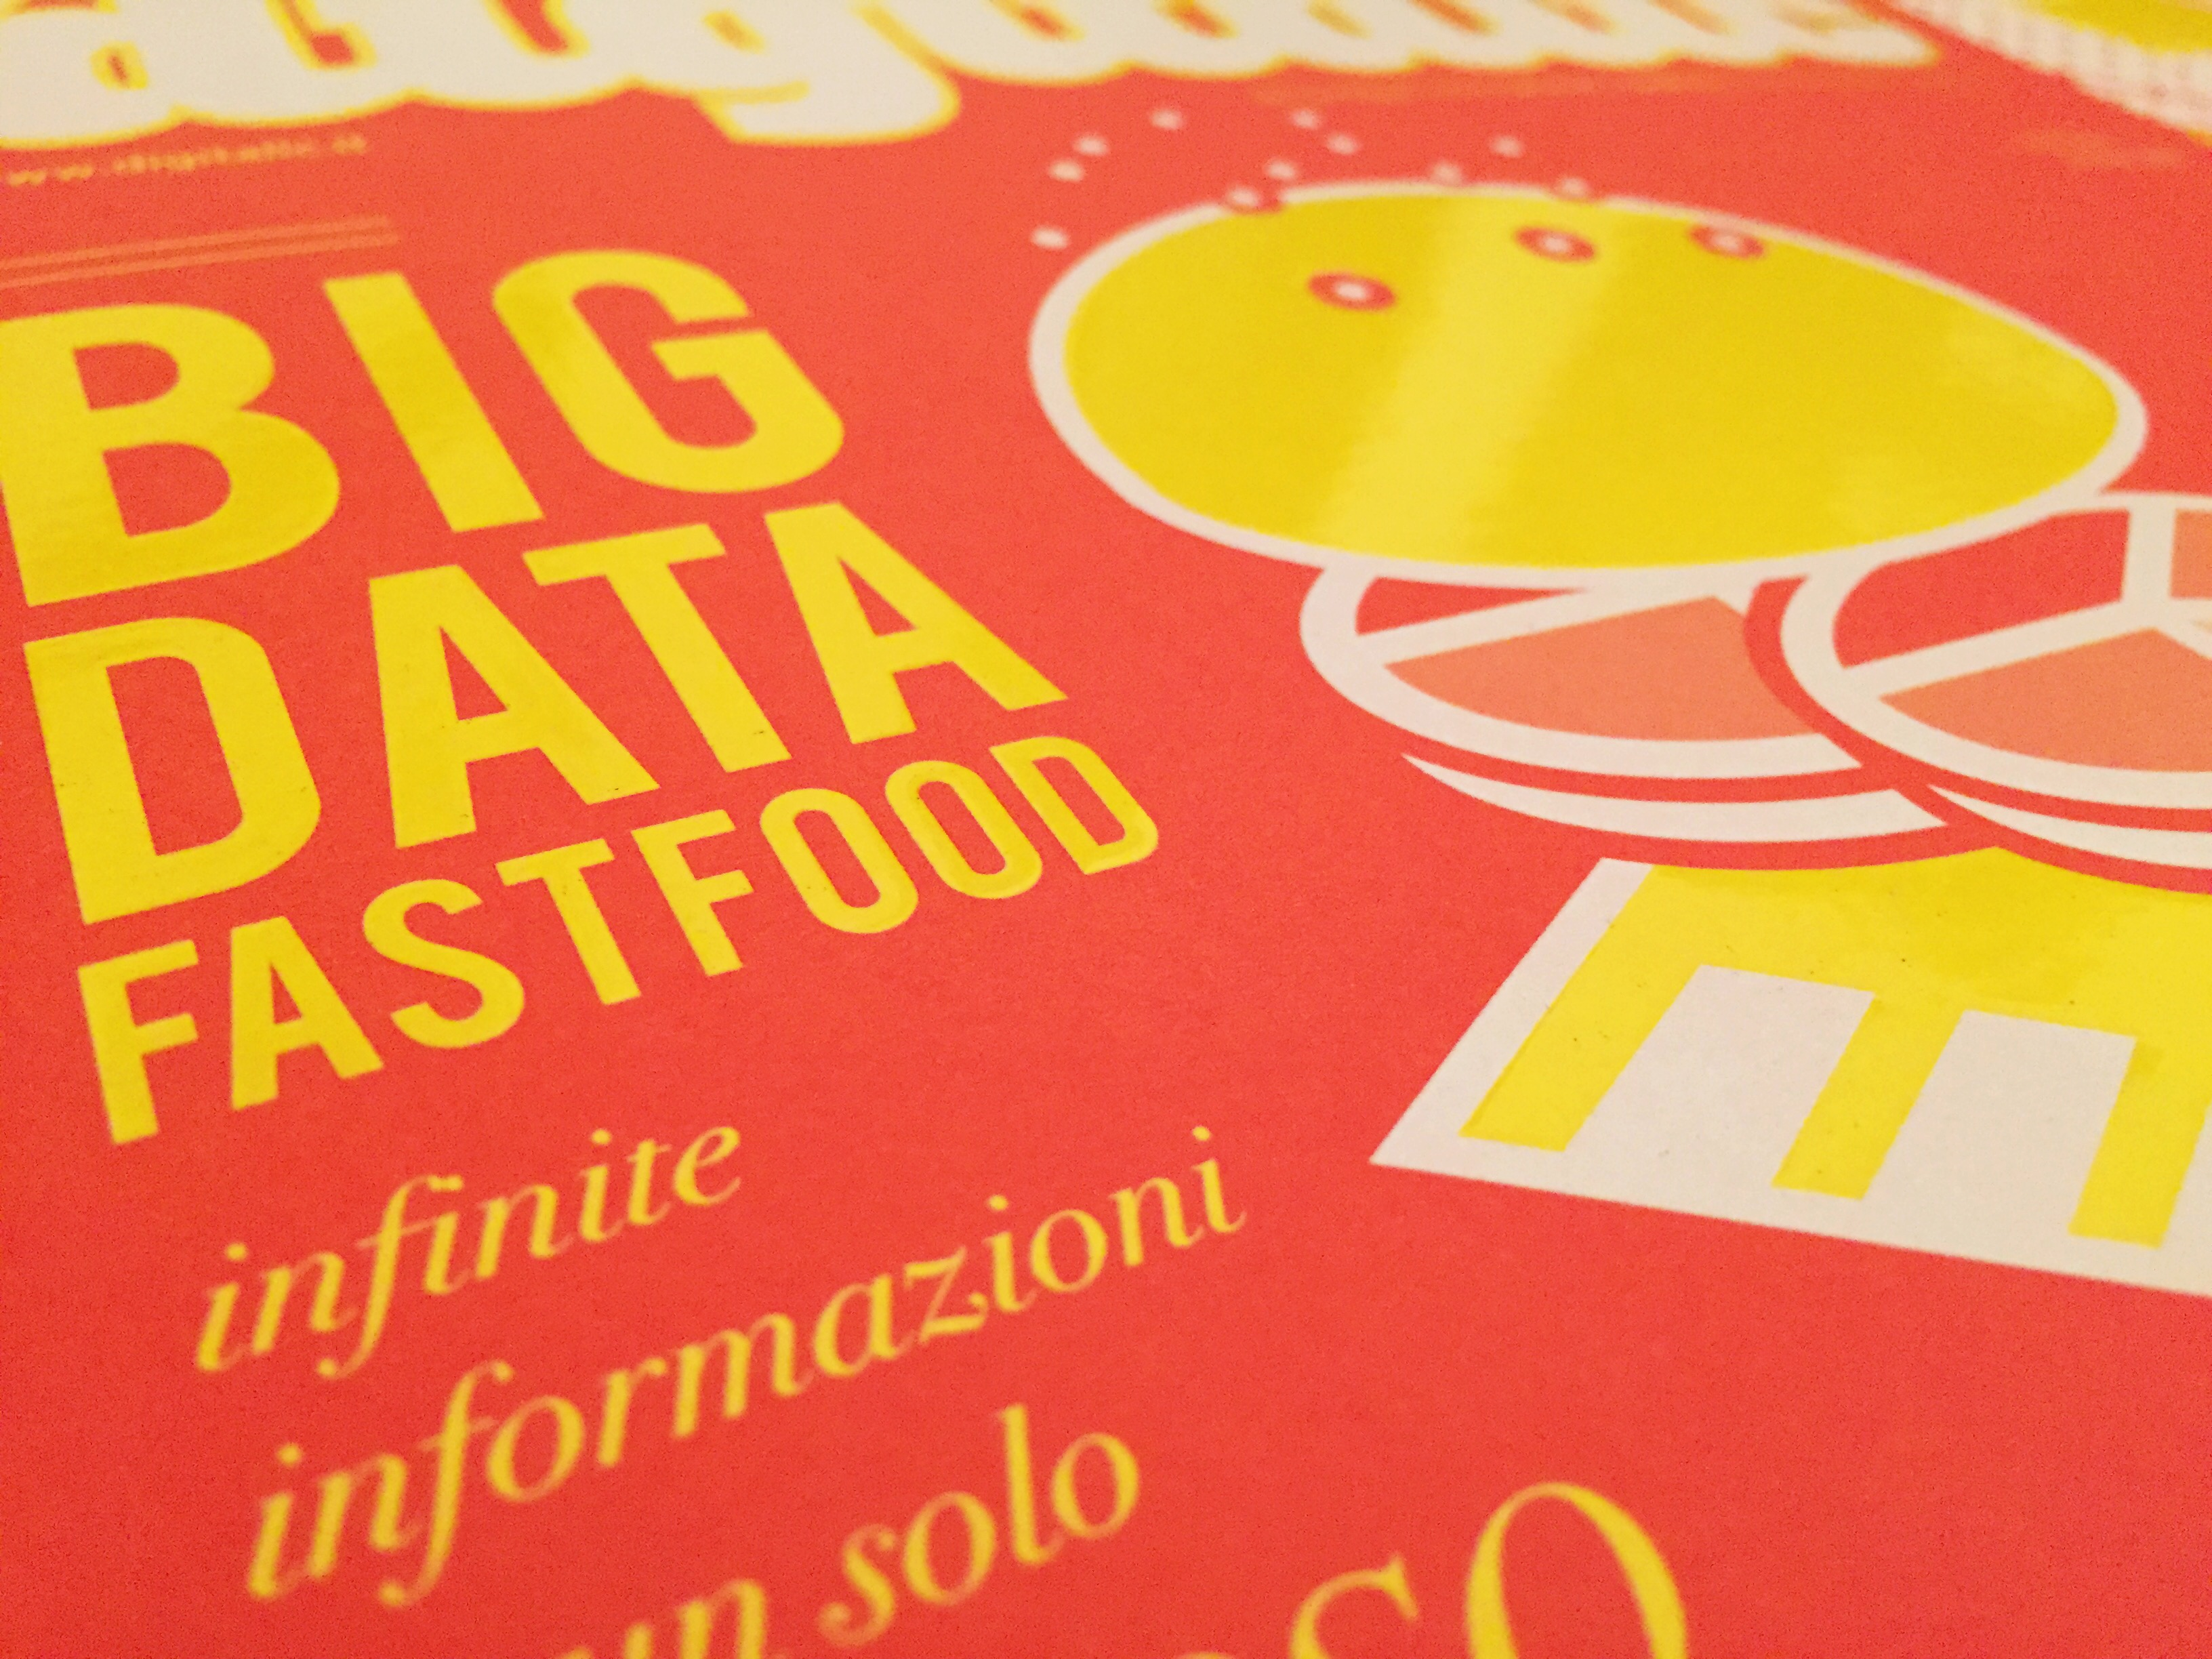 Digitalic n. 38 Big Data